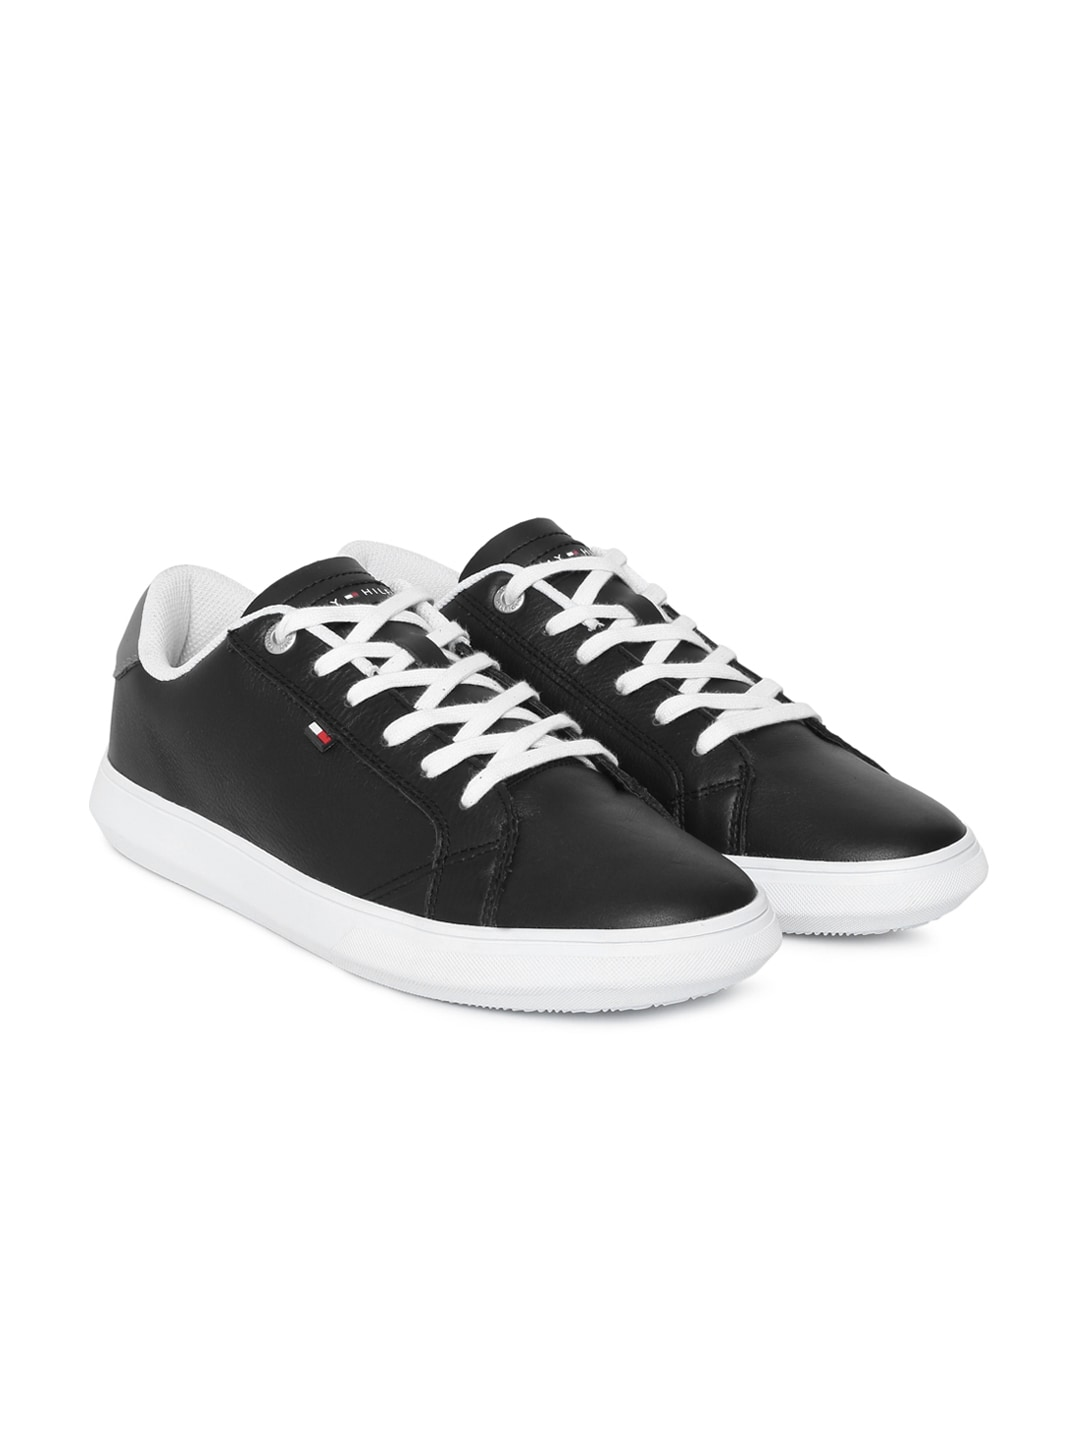 618fc2ae2c17 Tommy Hilfiger Shoes - Buy Tommy Hilfiger Shoes Online - Myntra